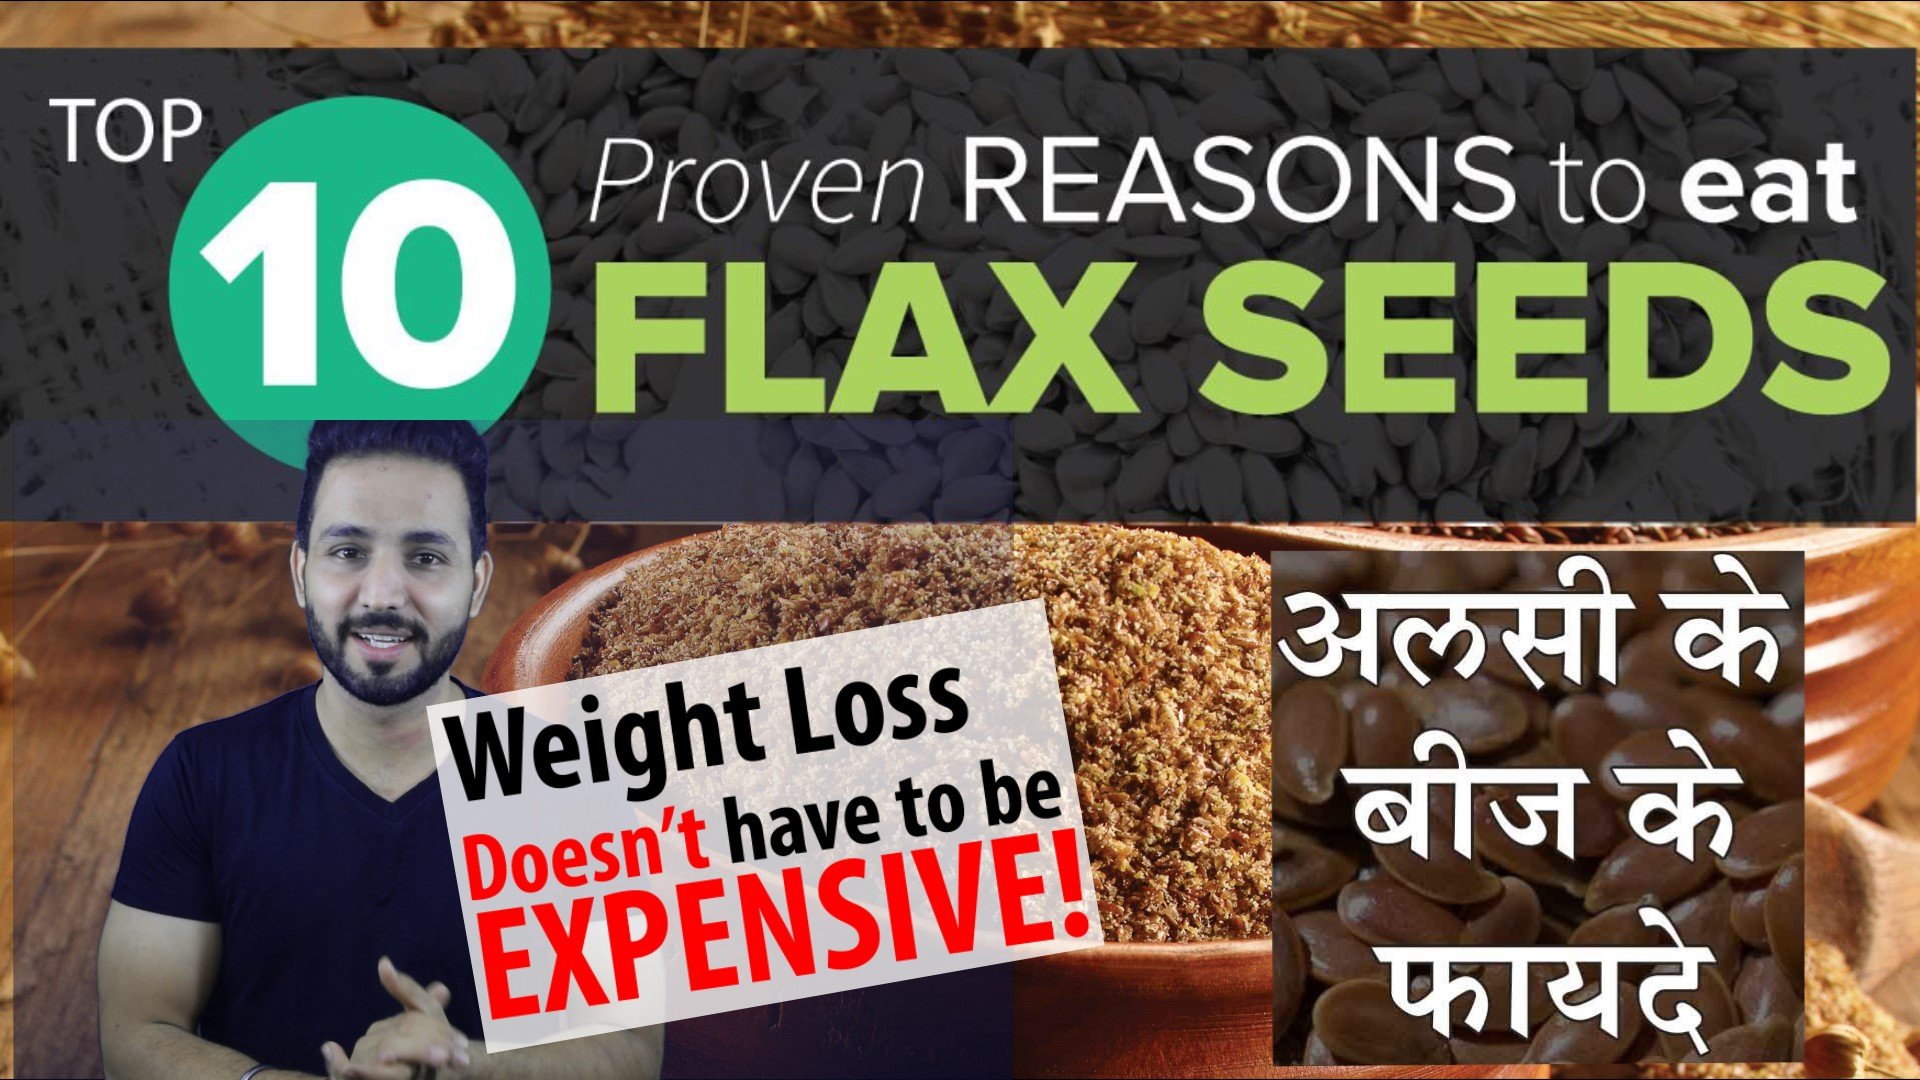 How to eat Flax Seeds - The Super Food?